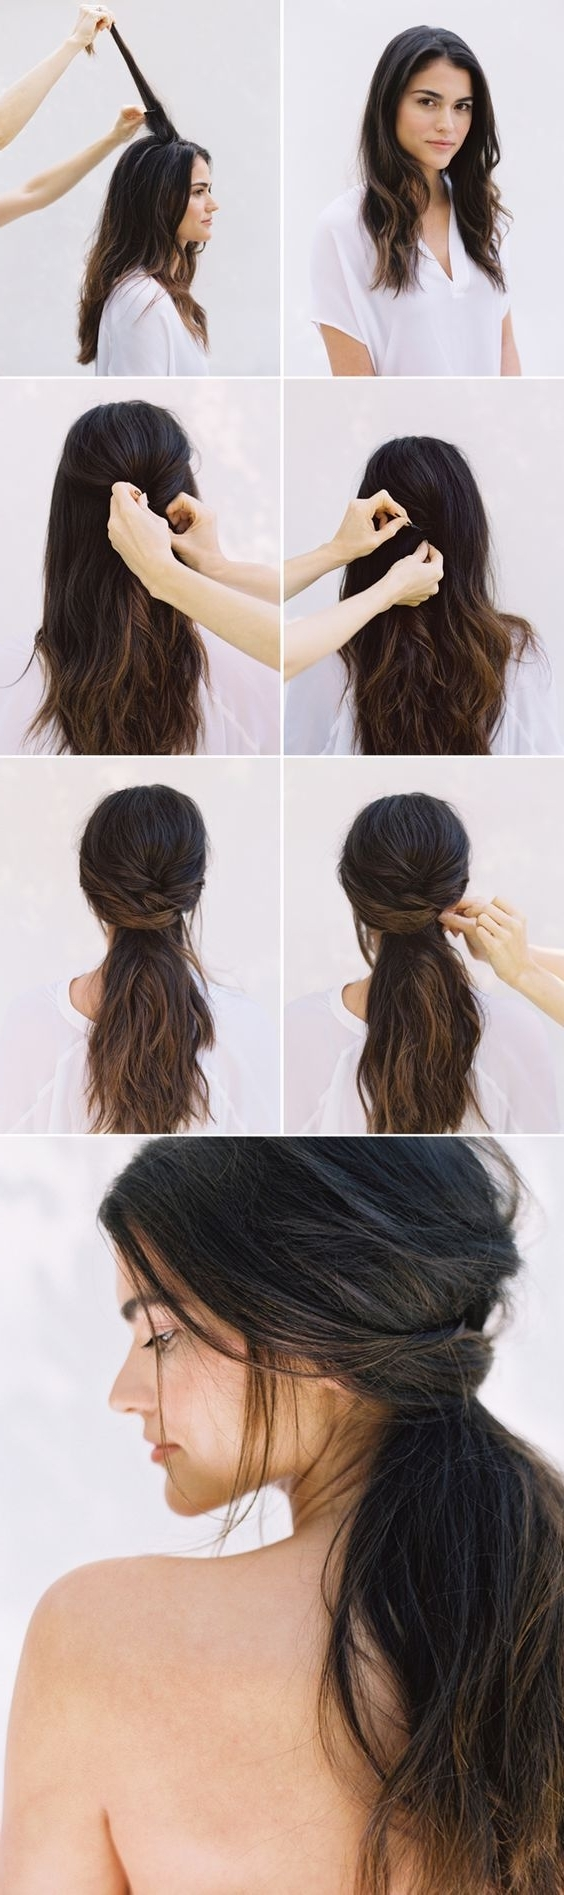 Trendy Low Bun Updo Hairstyles Tutorials Easy Cute Impressive For With Easy Updos For Thick Medium Length Hair (View 14 of 15)